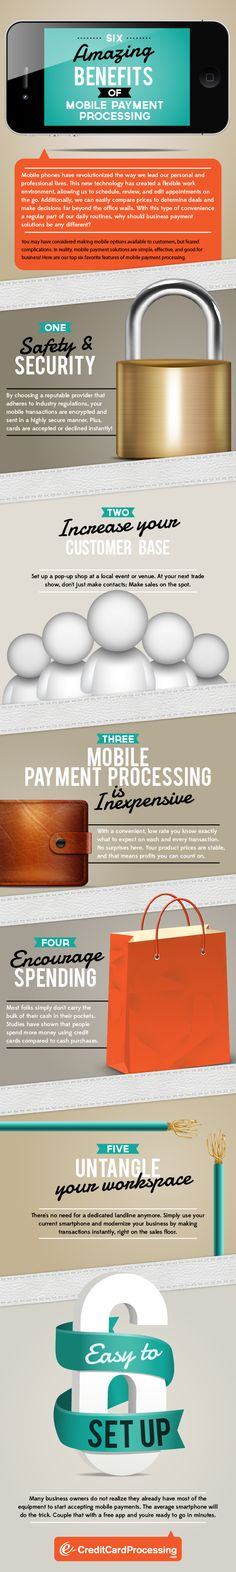 Six Amazing Benefits of #Mobile Payment Processing